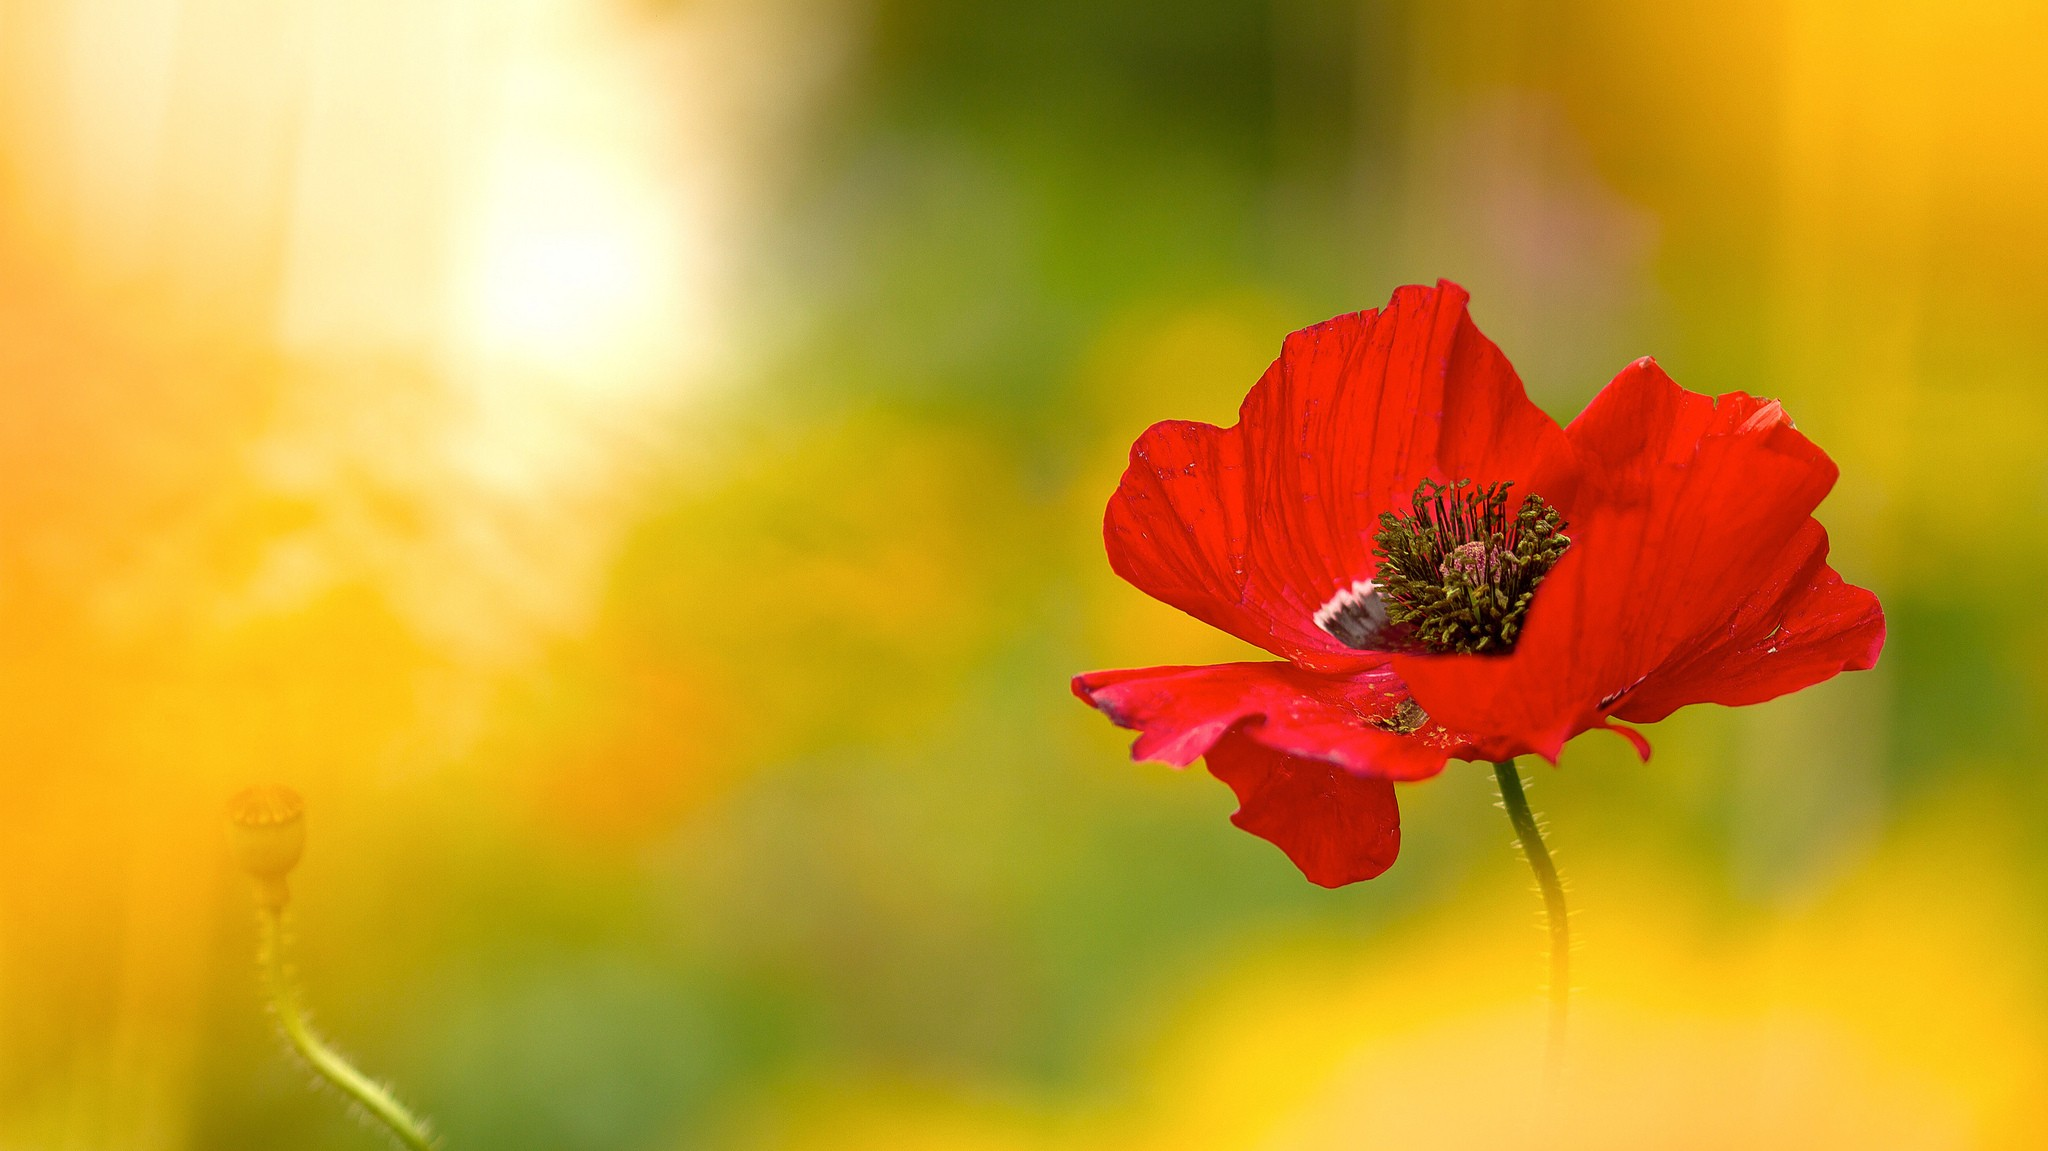 Free photo  Red poppy flower   Poppy  Red  Park   Free Download   Jooinn Red poppy flower